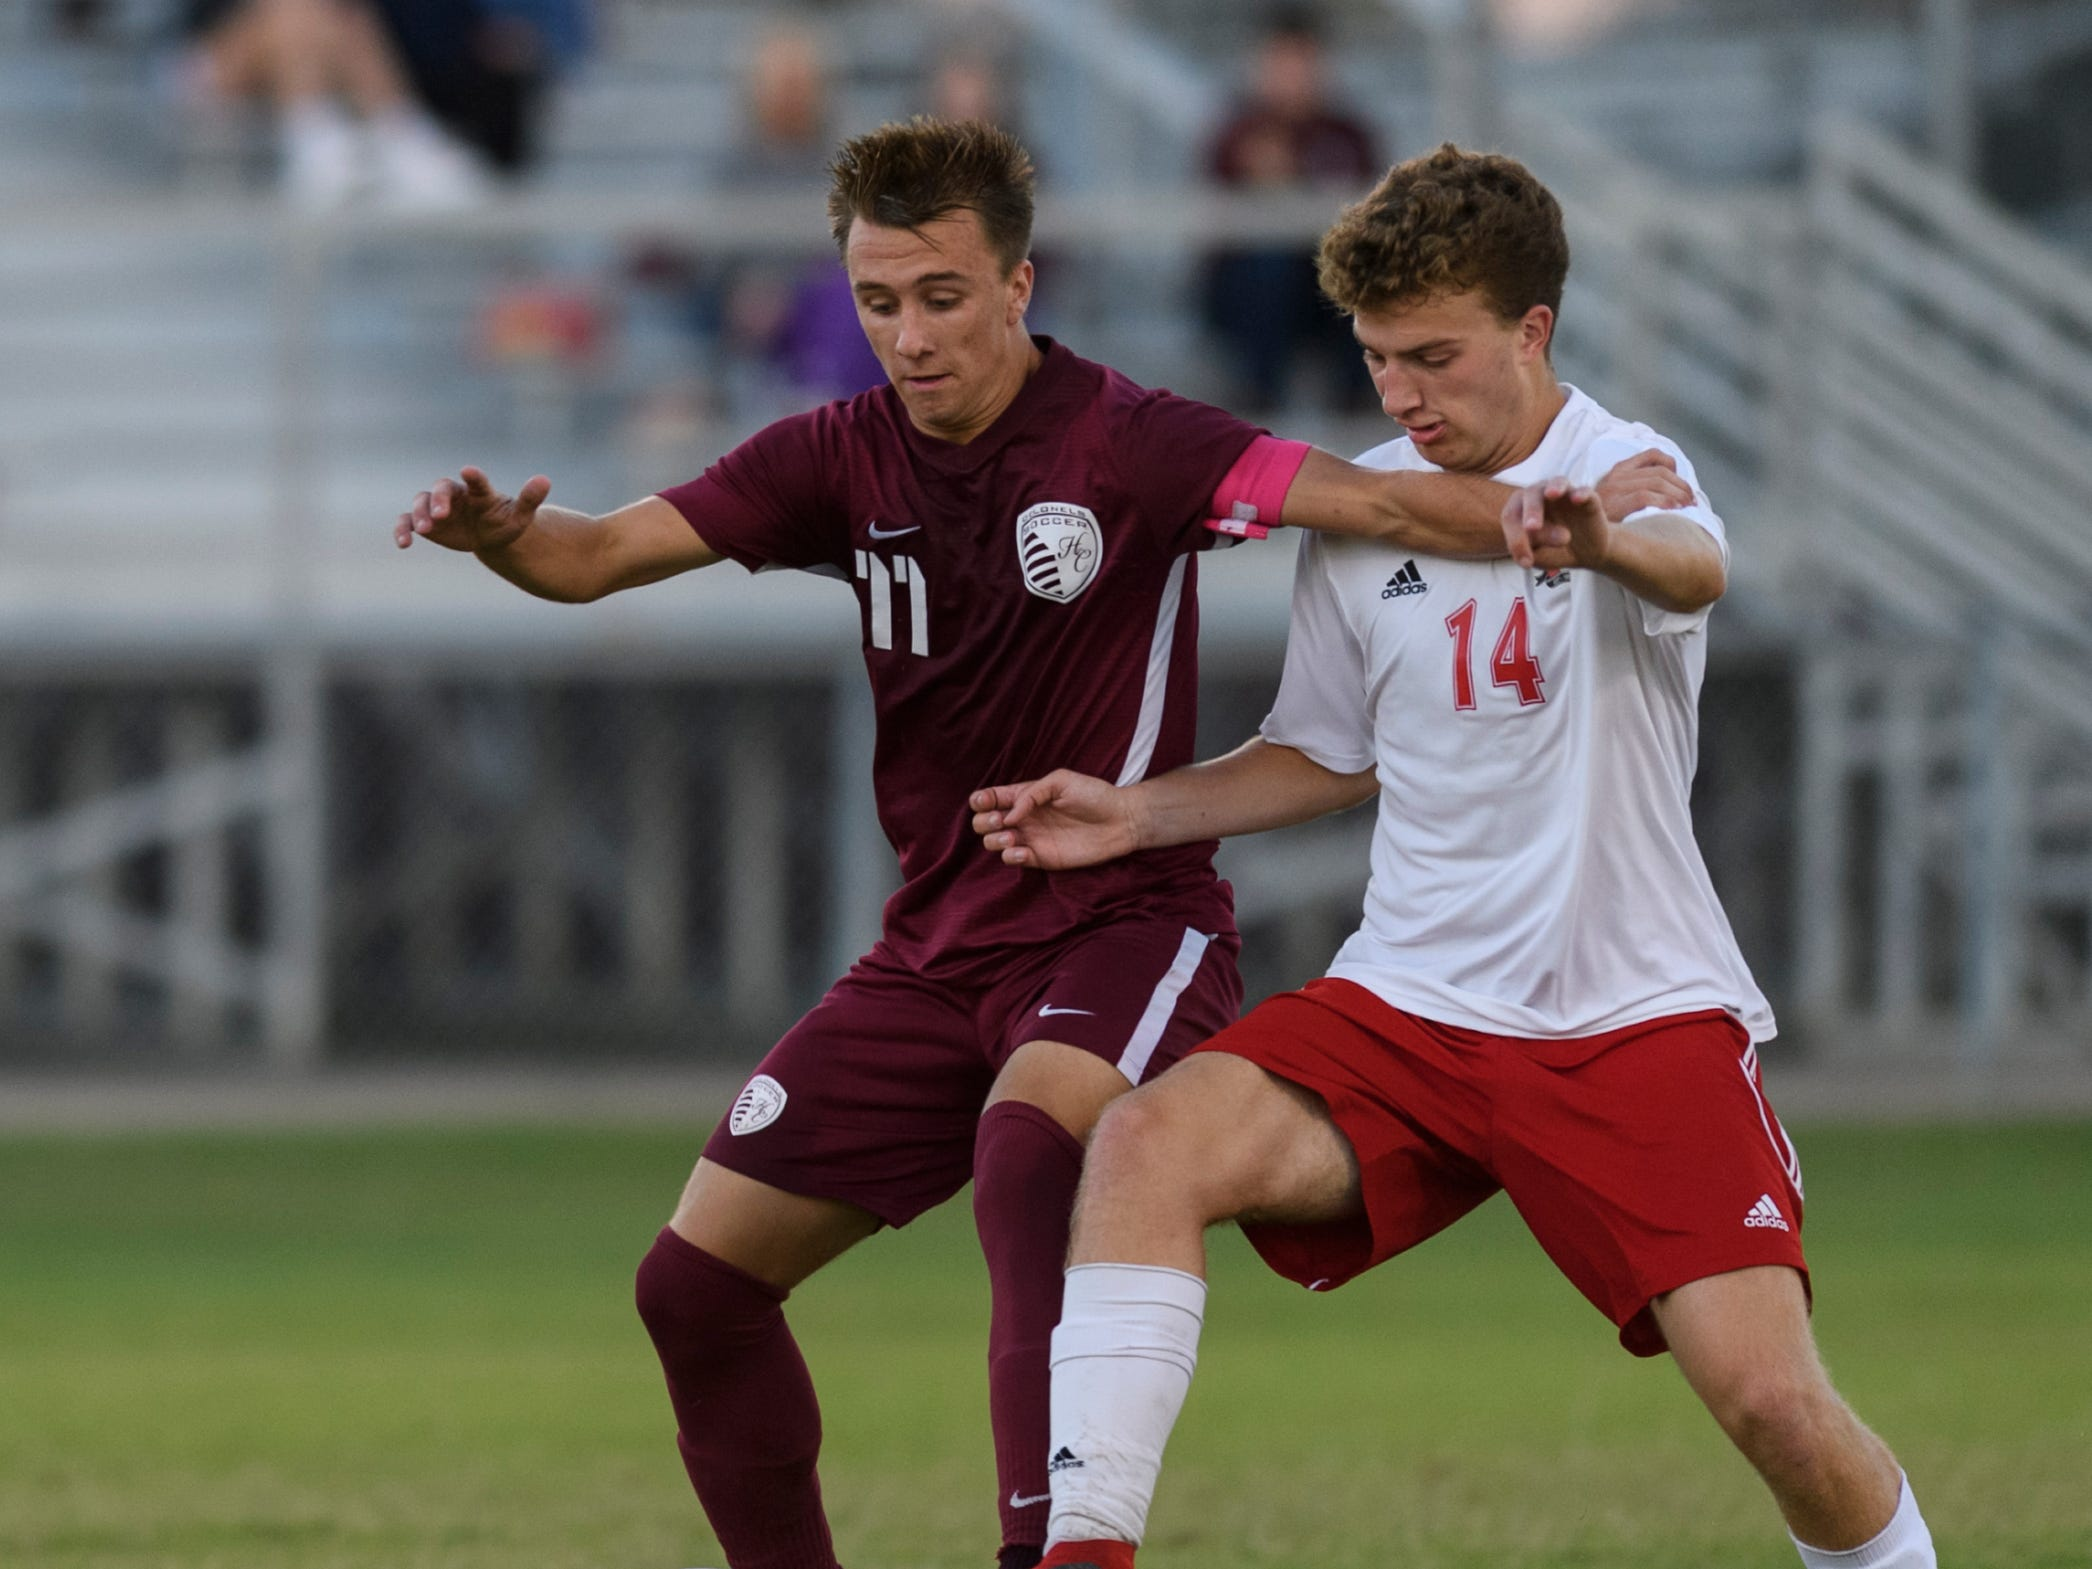 Henderson County's Max Wawrin (11) and Daviess County's Porter Watkins (14) fight for the ball at Colonel Field in Henderson, Ky., Thursday, Sept. 27, 2018. The Panthers defeated the Colonels 5-3.